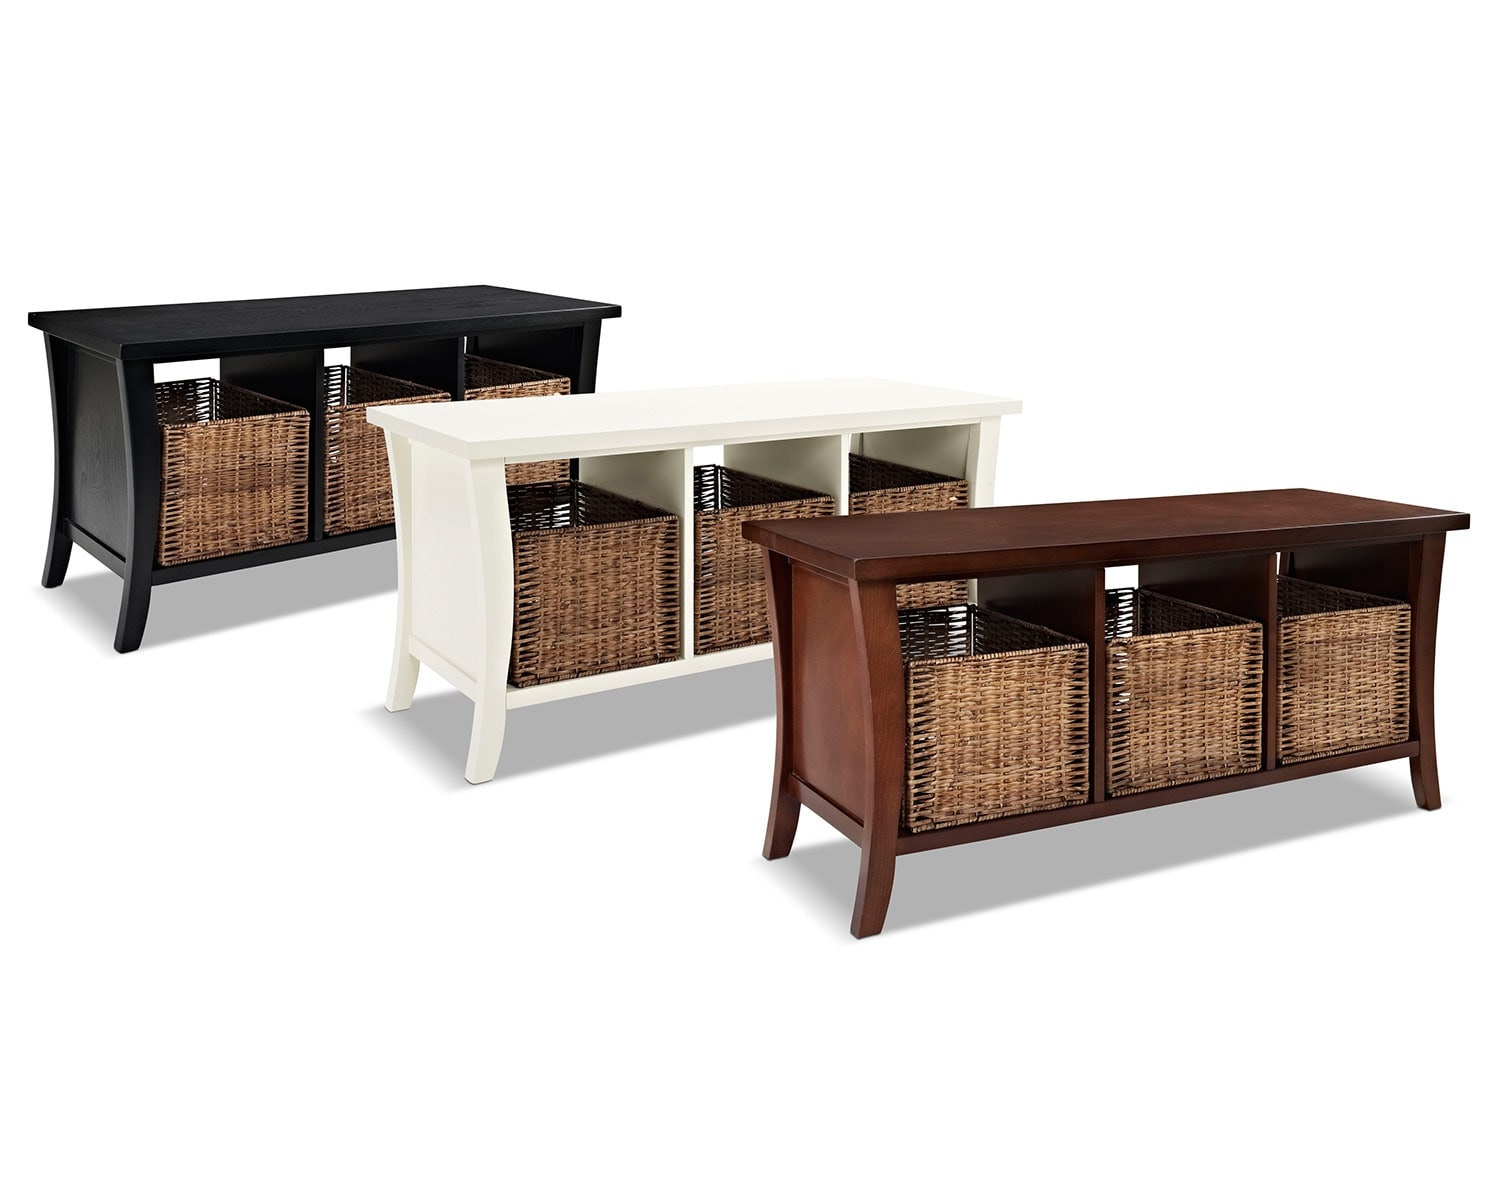 Great ... Value Center Furniture By Search Results Value City Furniture Value  City Furniture ...